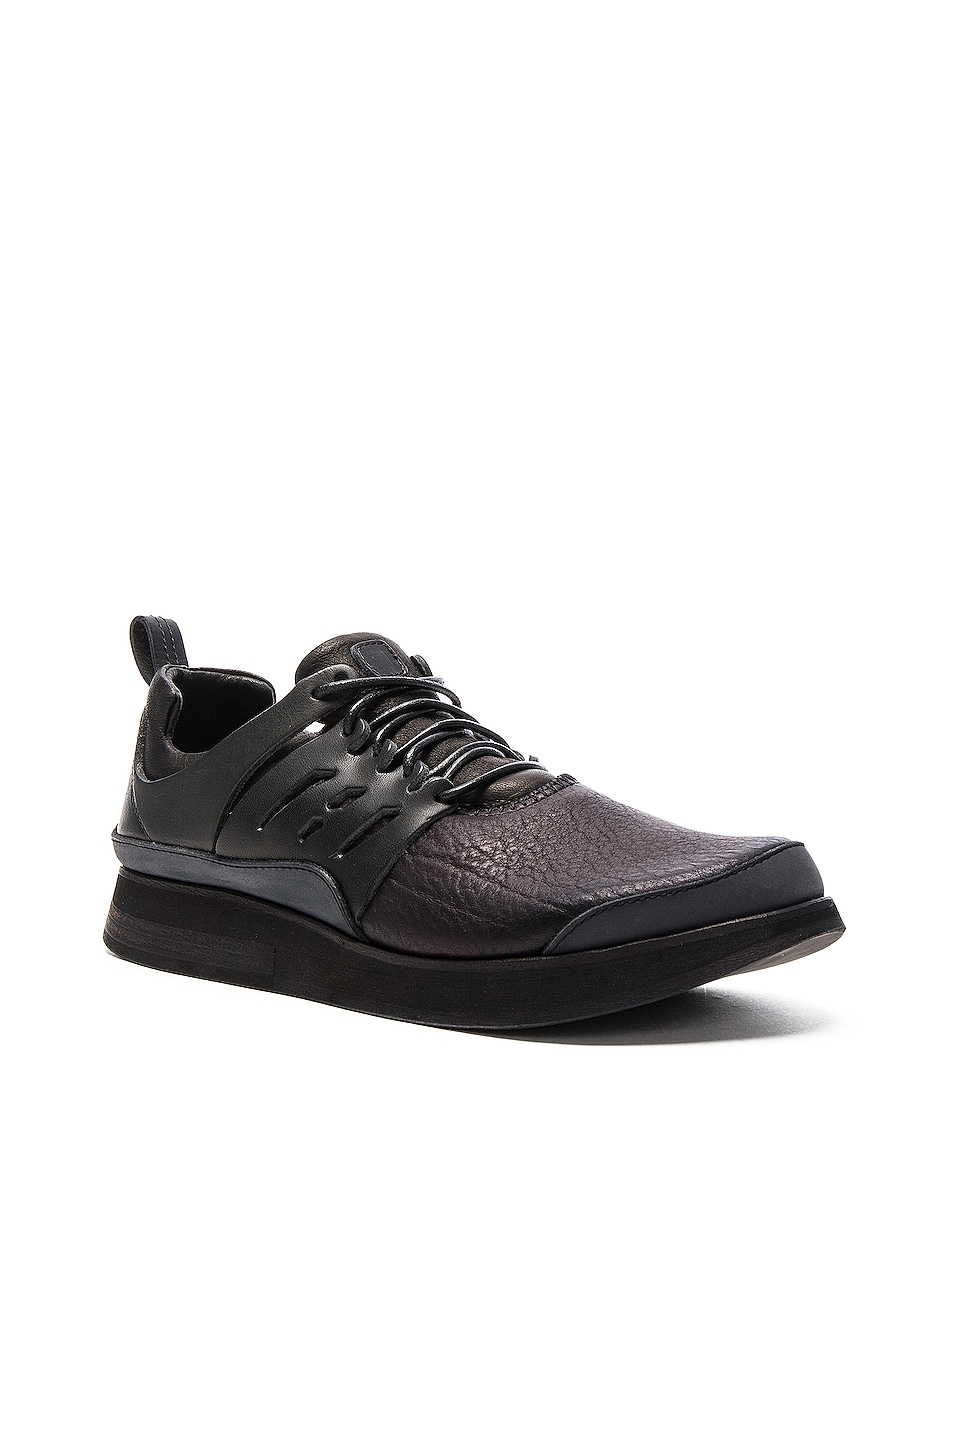 Image 2 of Hender Scheme Manual Industrial Product 12 in Black